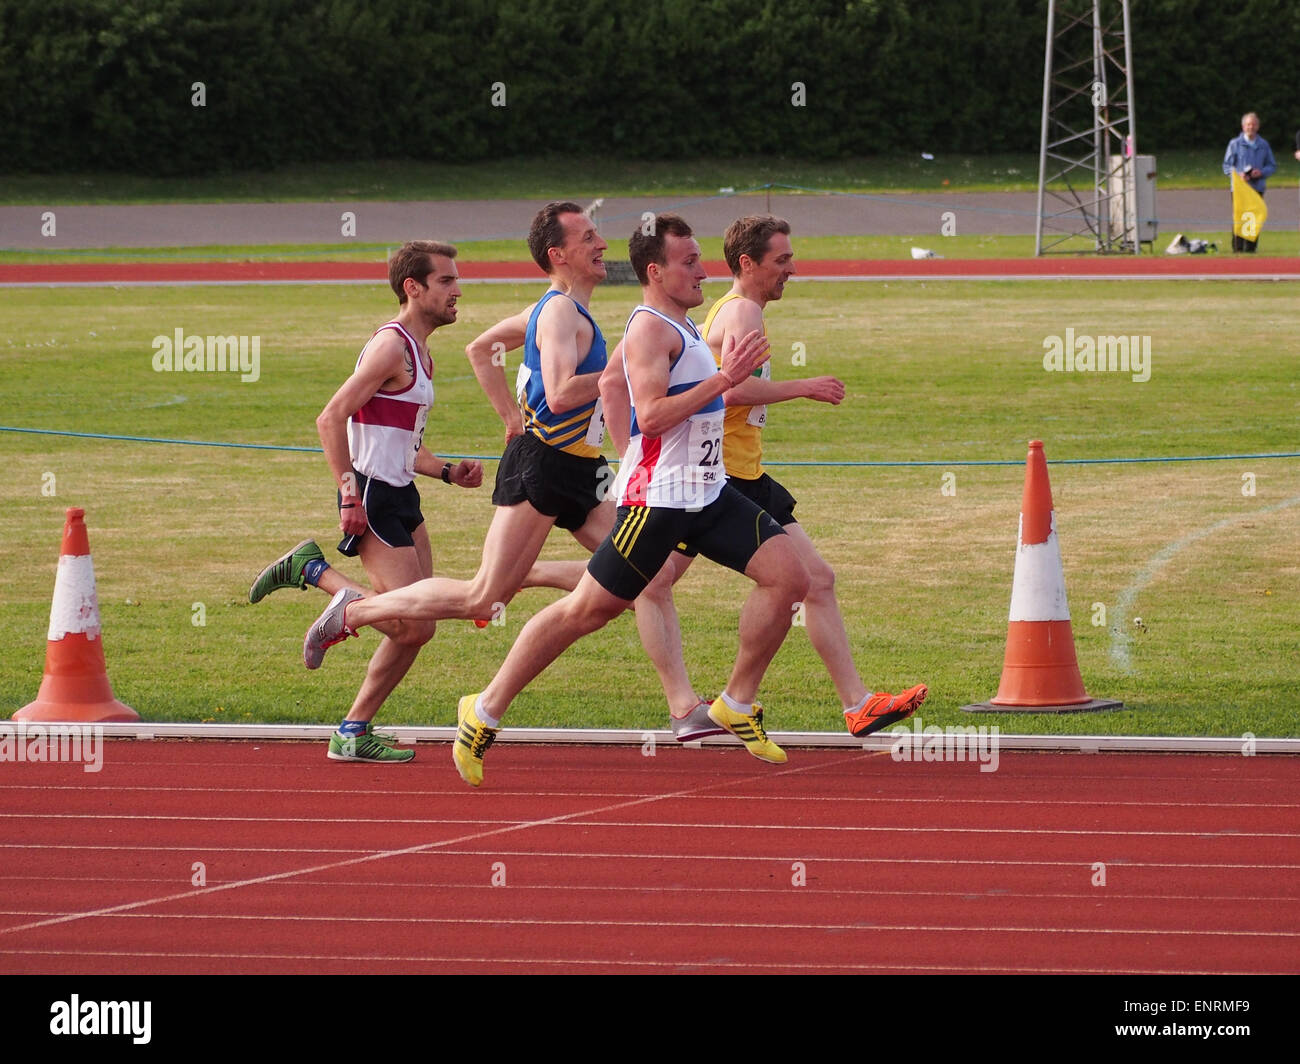 Runners sprint for the finish line during a distance race on an athletics running track - Stock Image